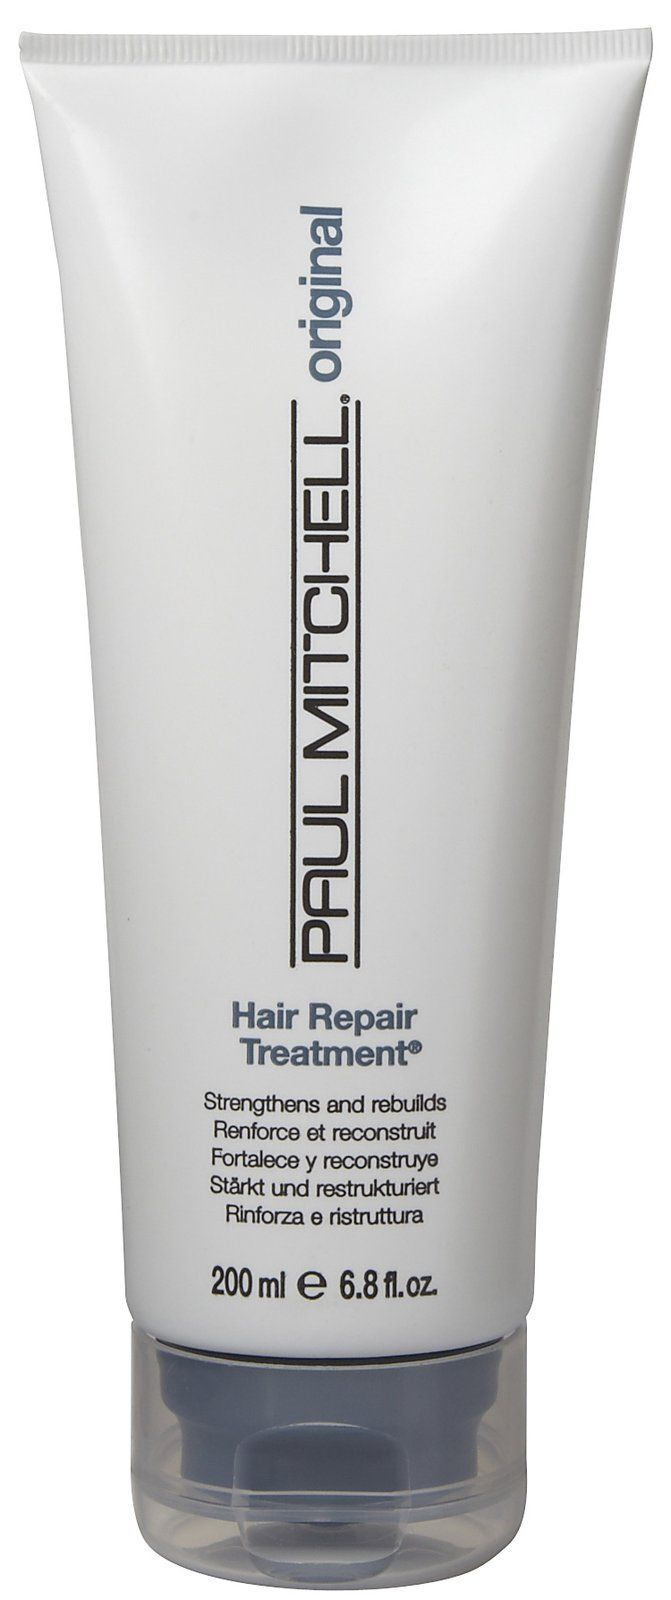 paul mitchell hair repair - perfect for the new year - give your ...